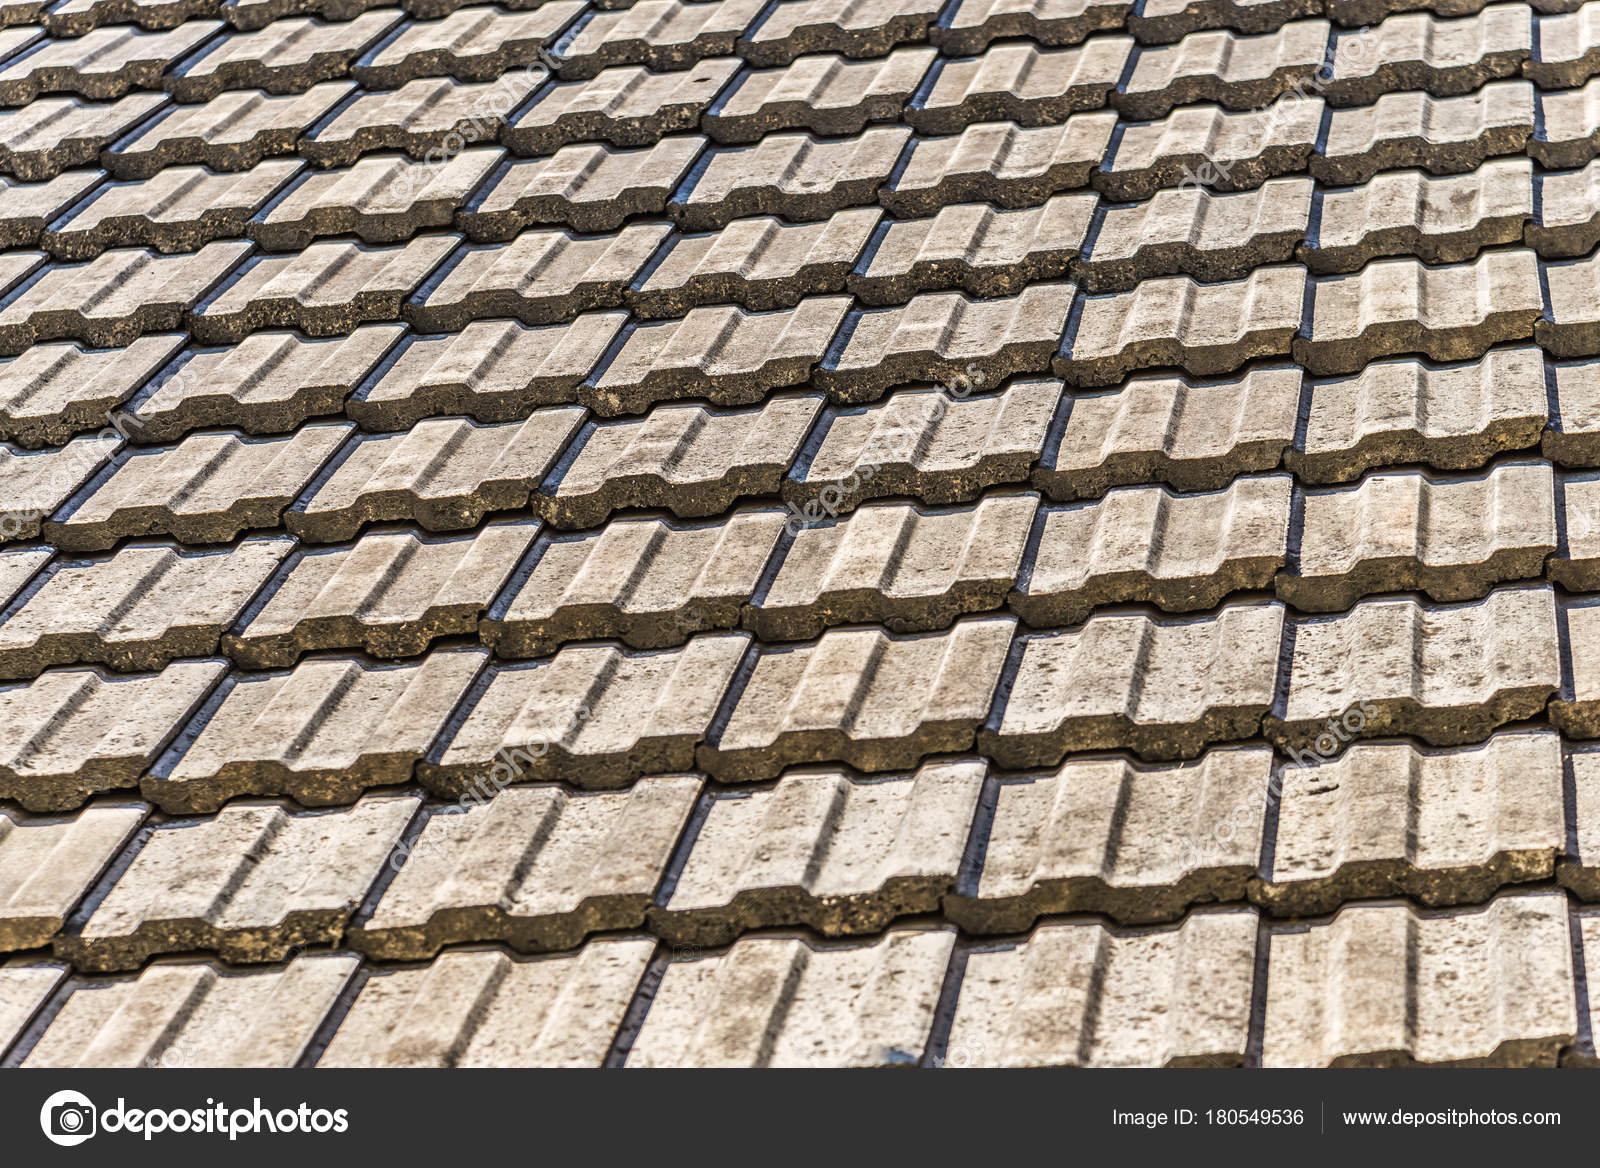 Dirty grey ceramic roof tile pattern stock photo gjeerawut dirty grey ceramic roof tile pattern photo by gjeerawut dailygadgetfo Image collections